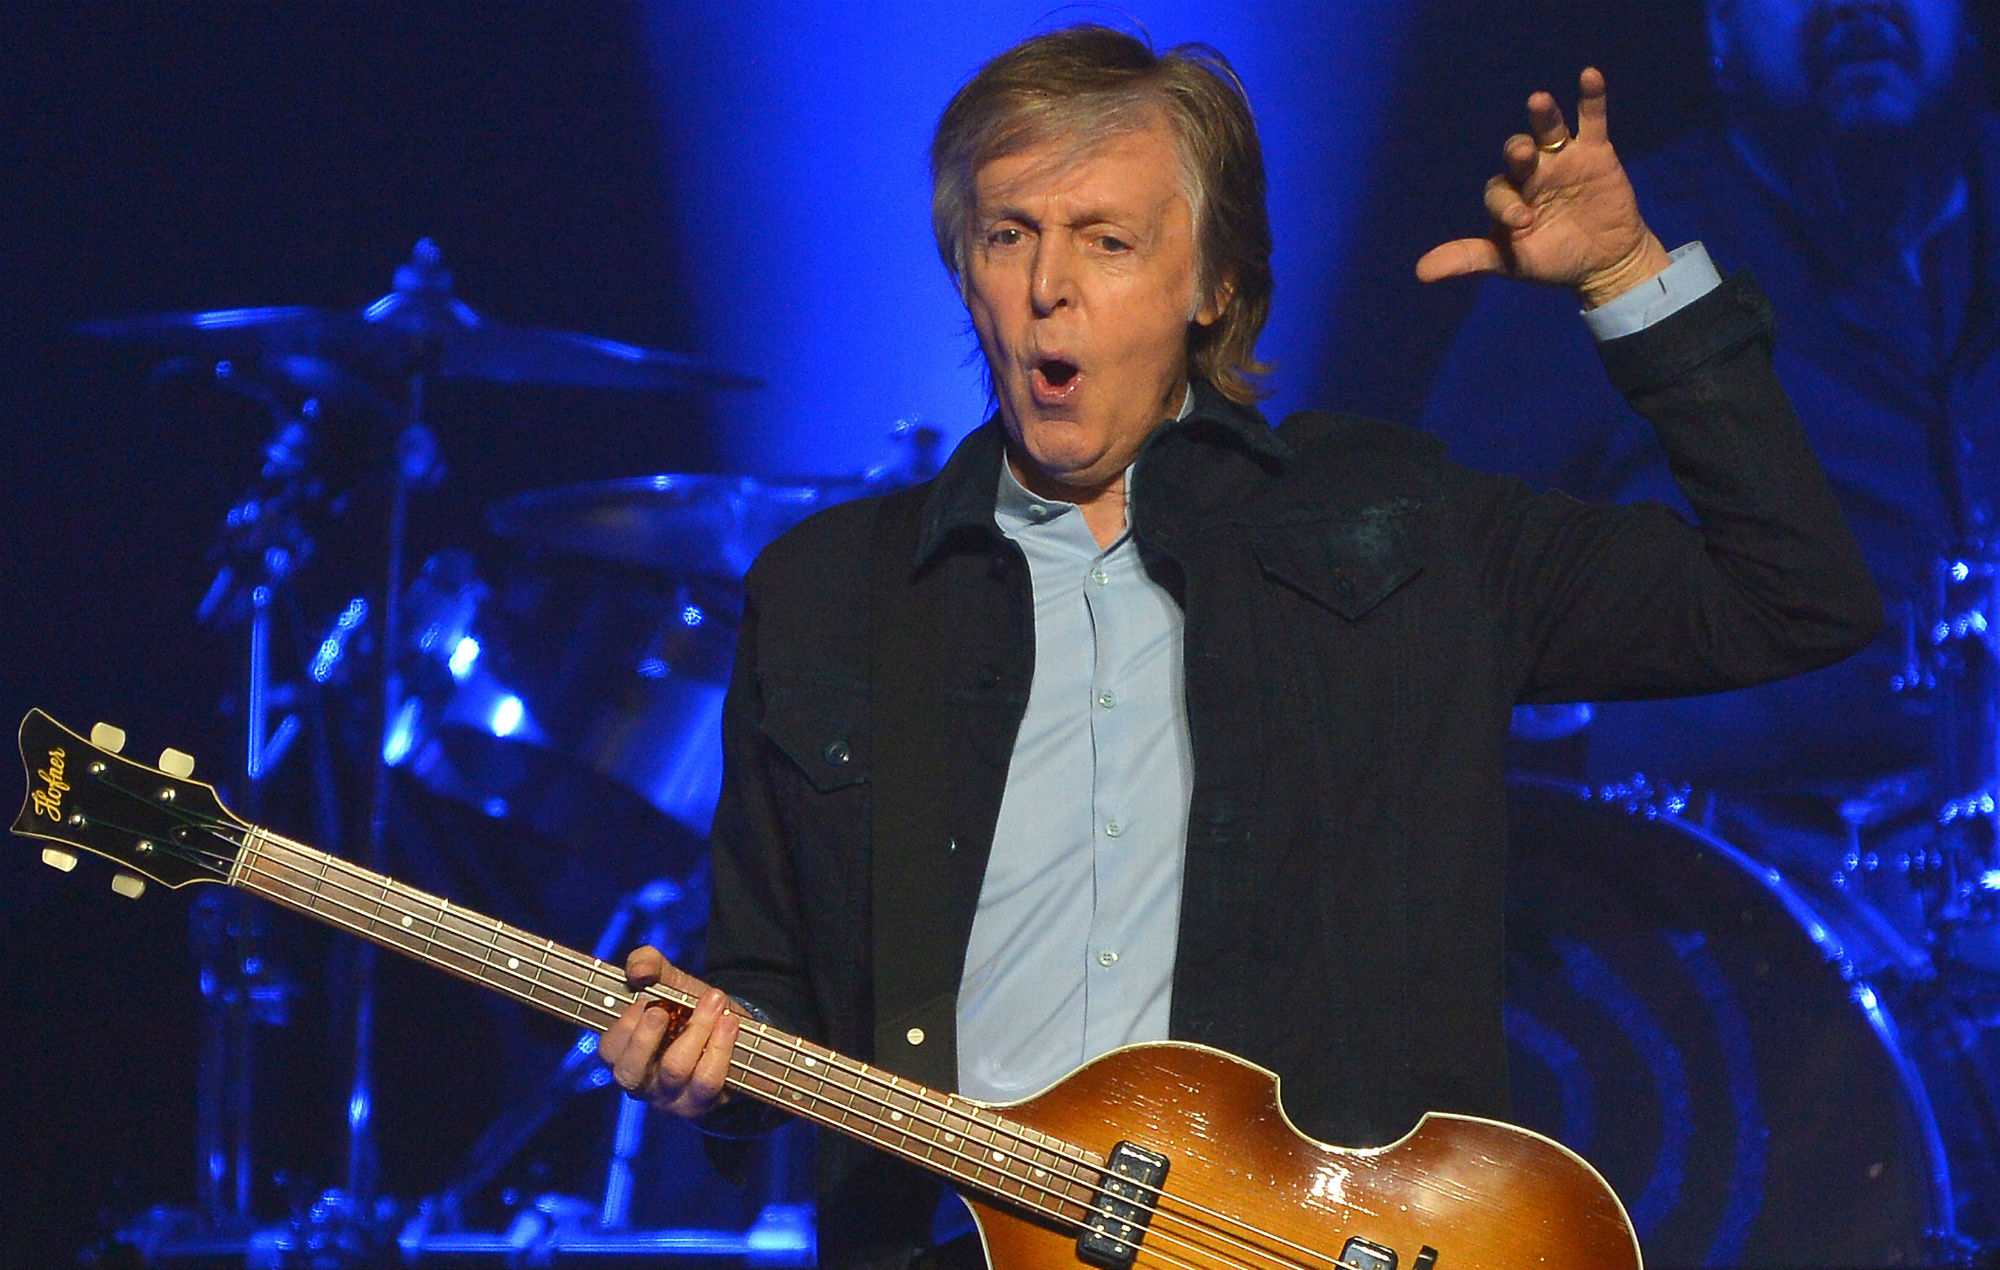 Listen to a heavily auto-tuned Paul McCartney on his new